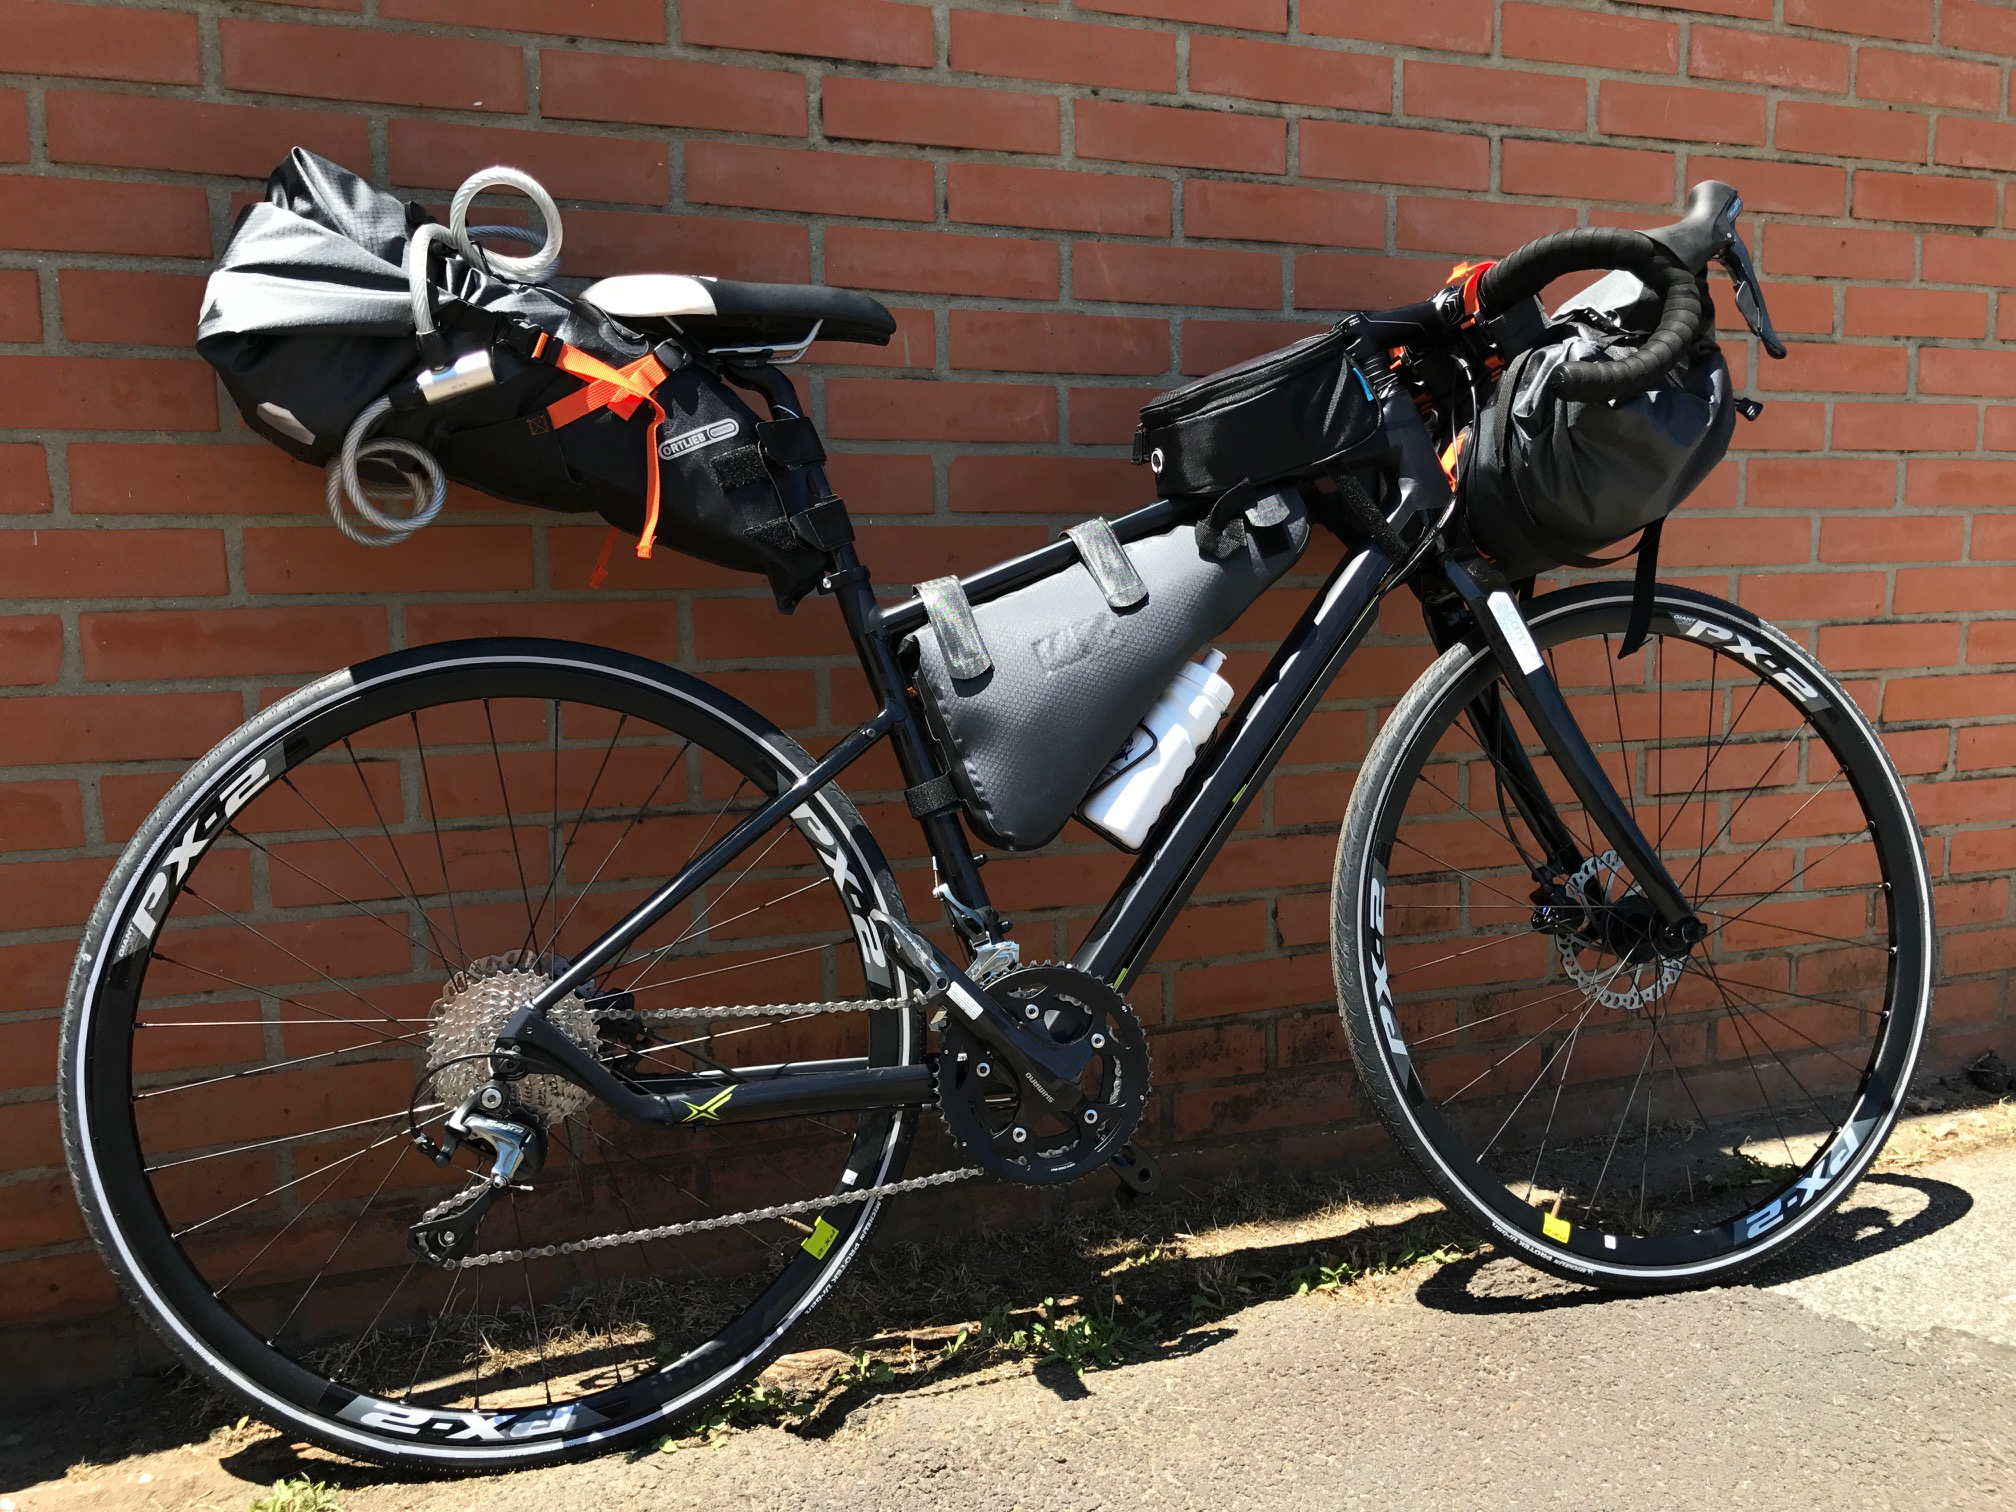 Our Gravel bike full ORTLIEB bags equipped is ready to start for a Toscana ride